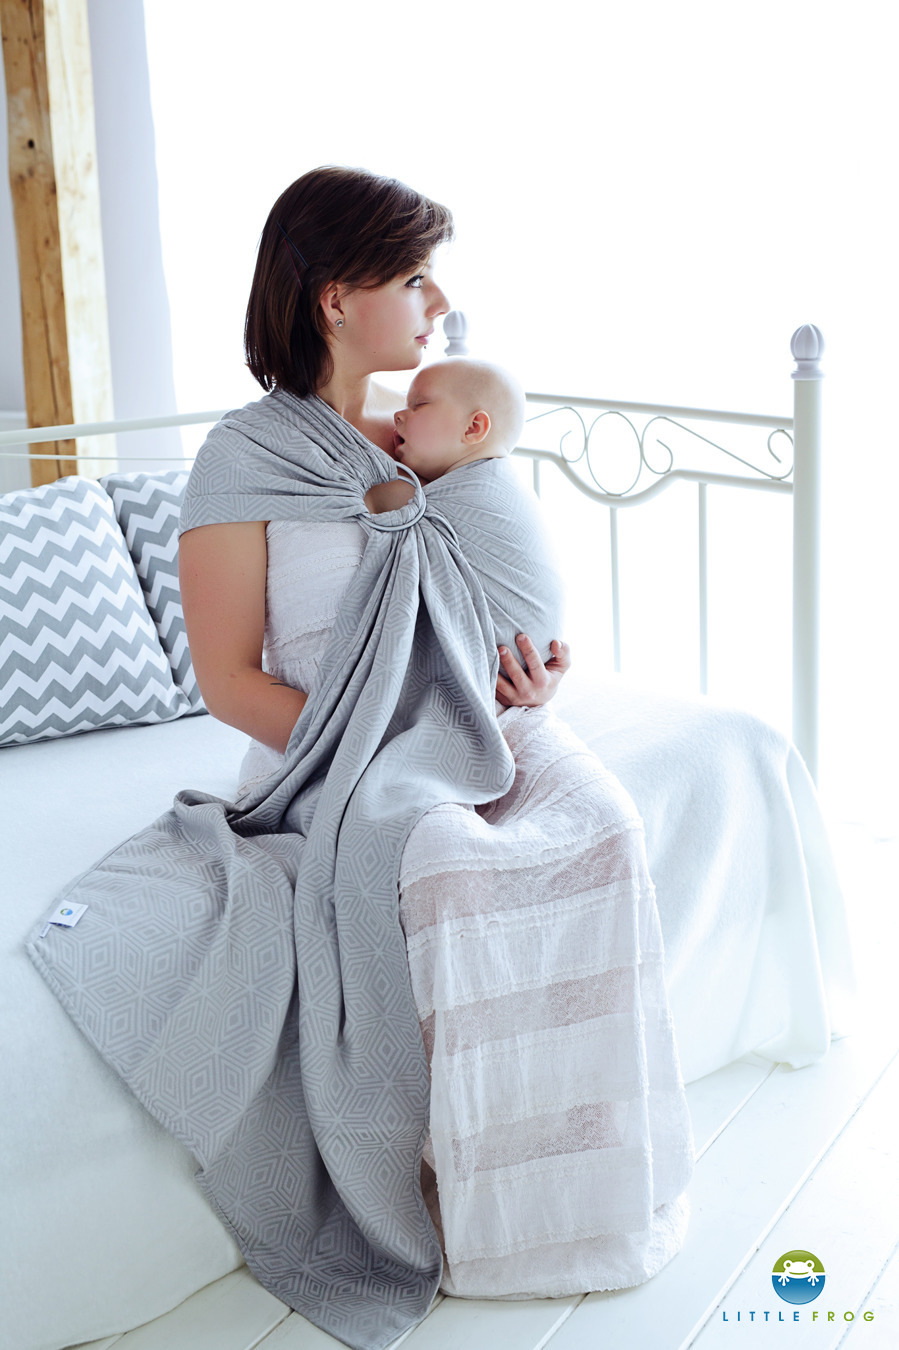 b52c84b9739 LITTLE FROG JACQUARD RING SLING - GREY CUBE -size M Click to zoom ...